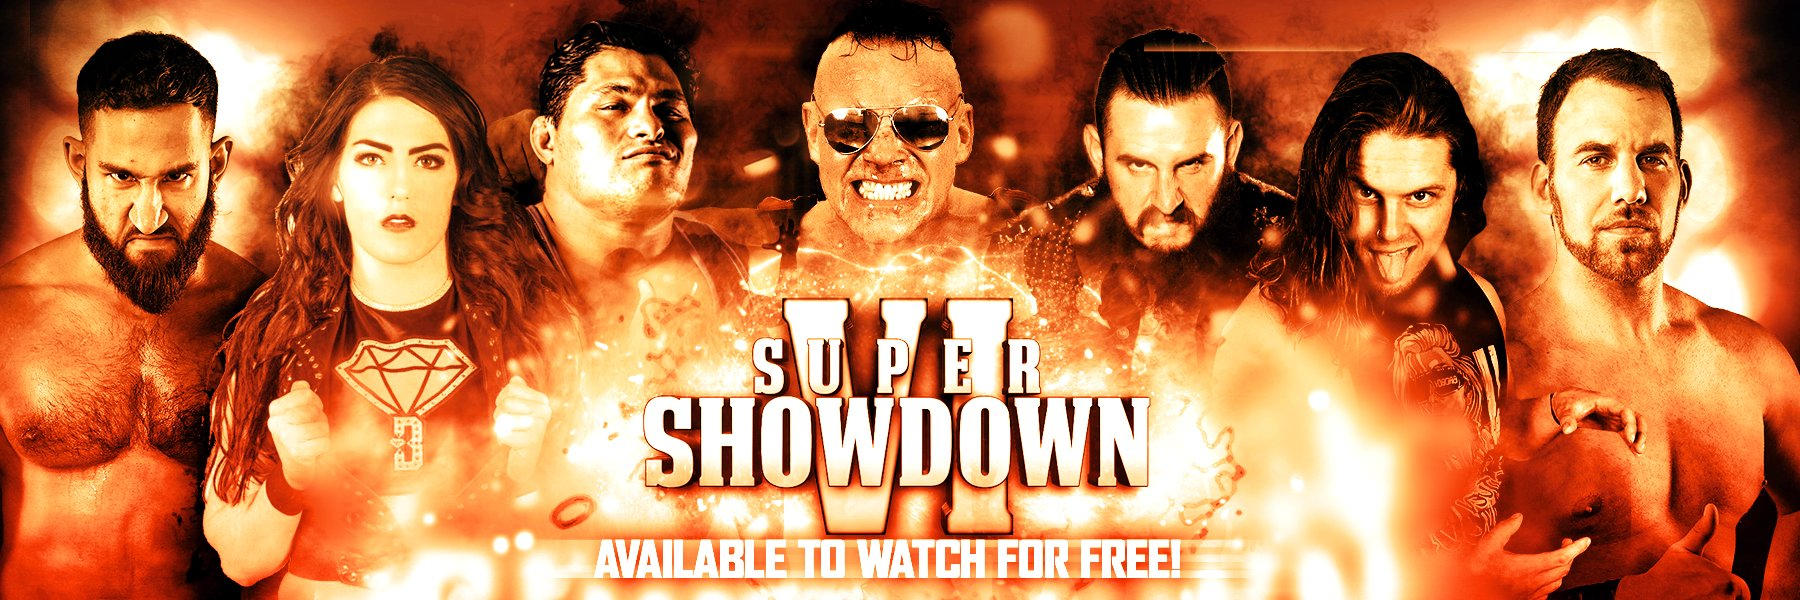 Watch Super Showdown VI for FREE!